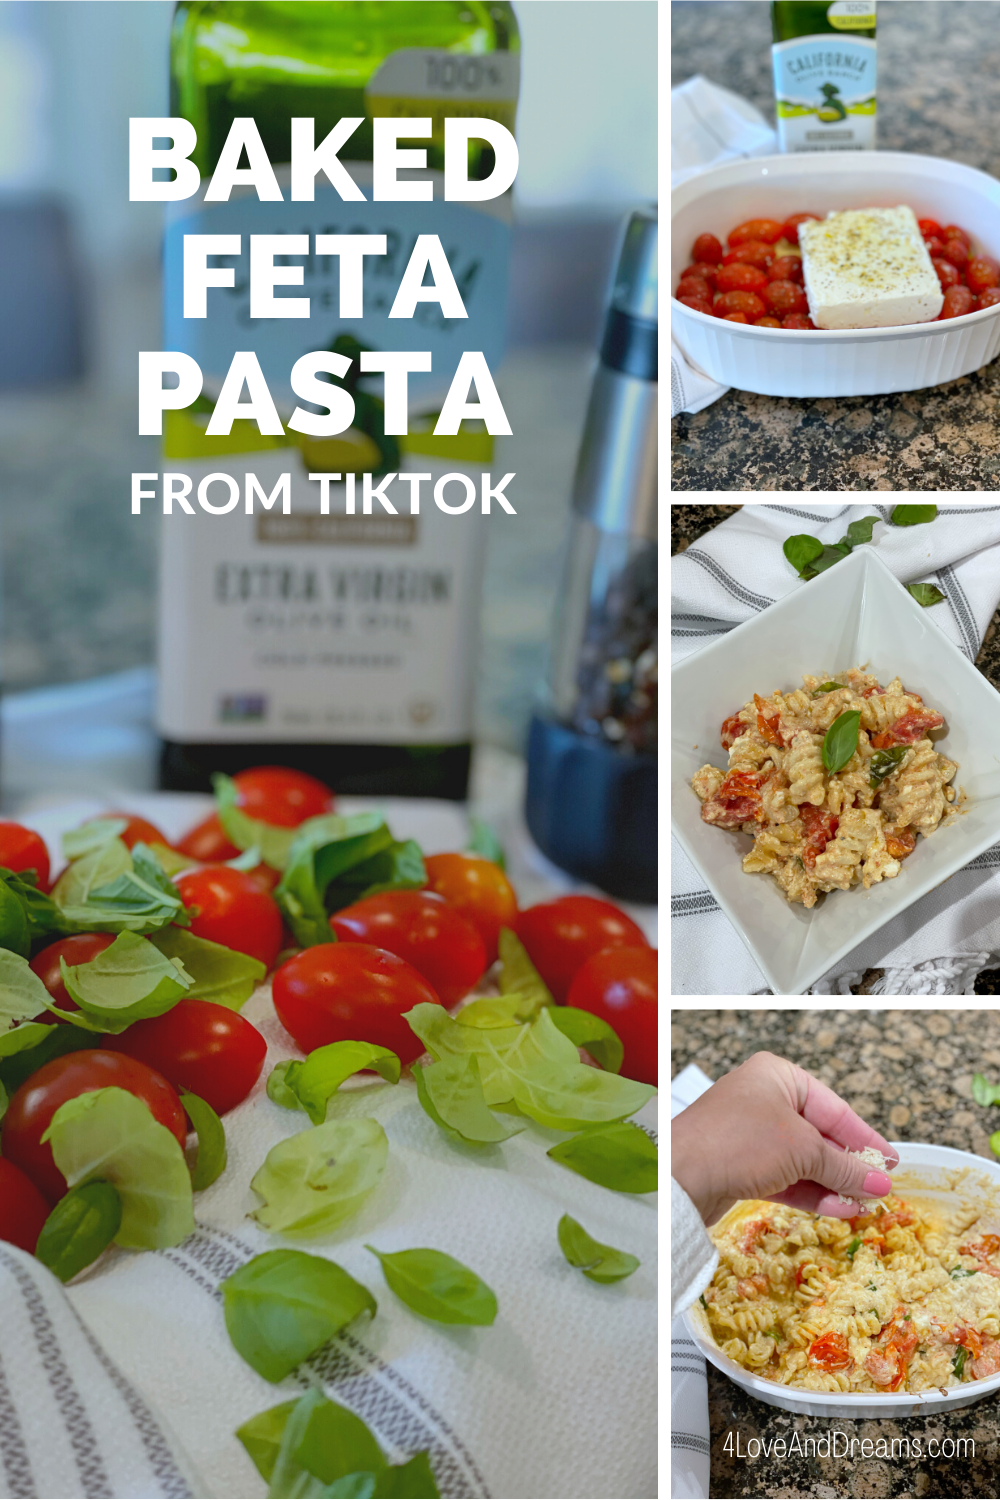 valentine dinner ideas. valentine dinner recipes. valentine dinner recipe ideas.baked feta pasta from tik Tok. Italian pasta from tik Tok. easy weeknight meals. company is coming easy meal. baked feta and tomato pasta. baked feta pasta TikTok. baked feta with tomatoes